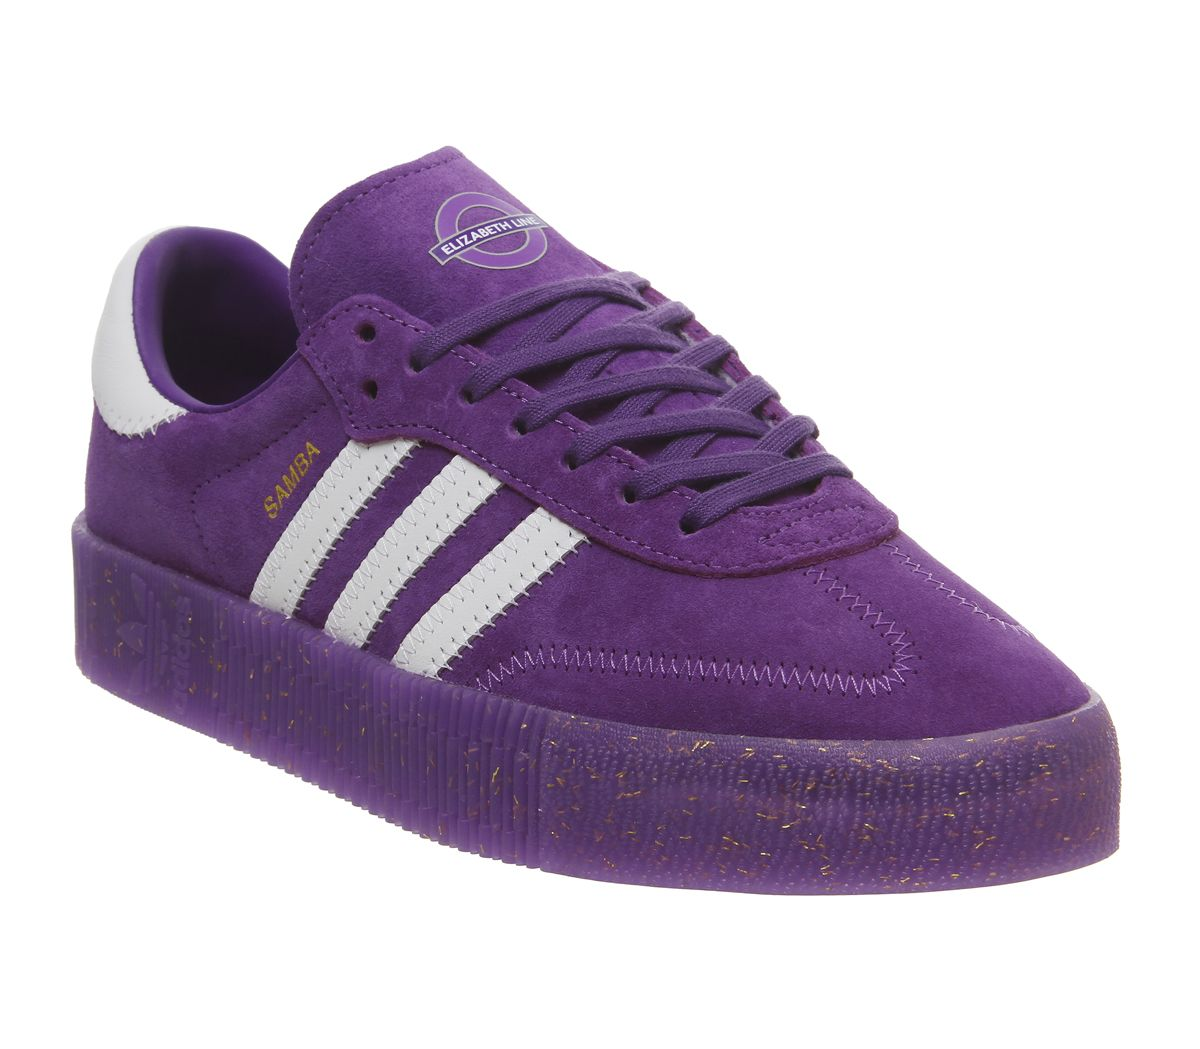 brand new 37eca bc3aa adidas Samba Rose Trainers Purple White Gold Metallic Elizabeth Tfl ...